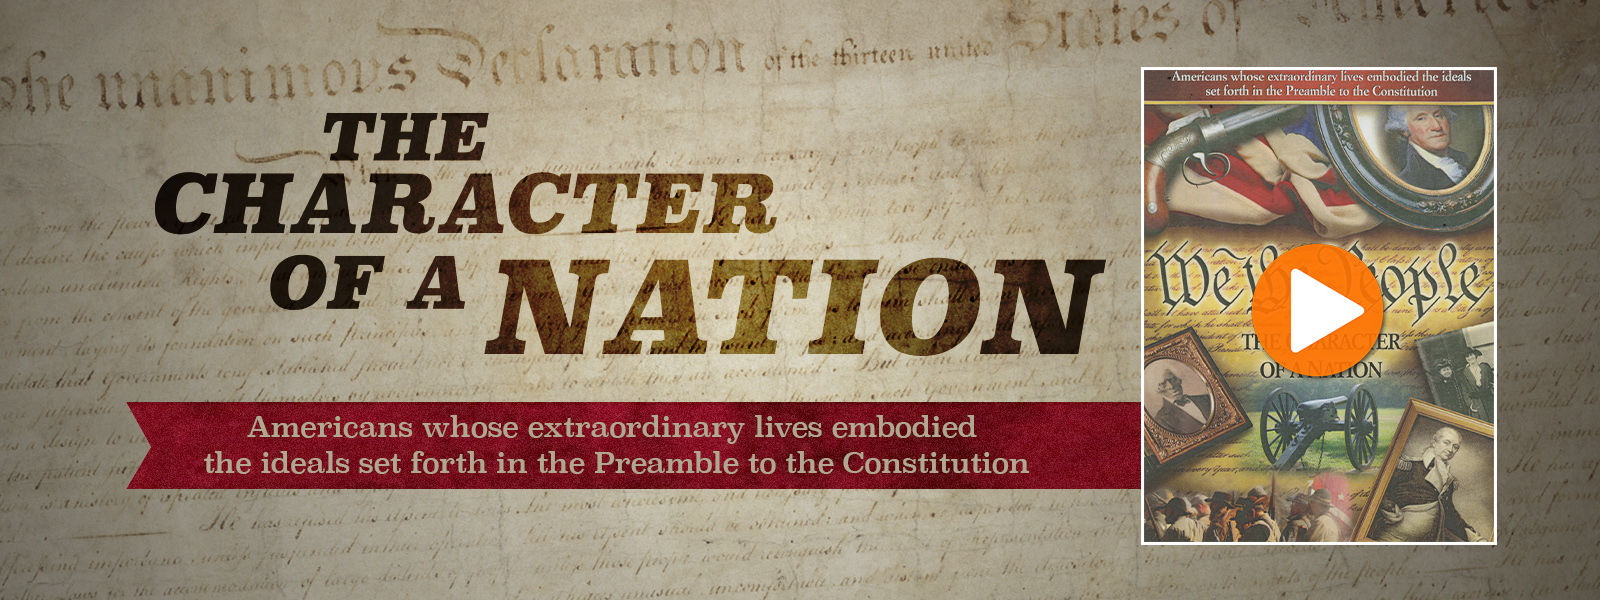 We the People - The Character of a Nation